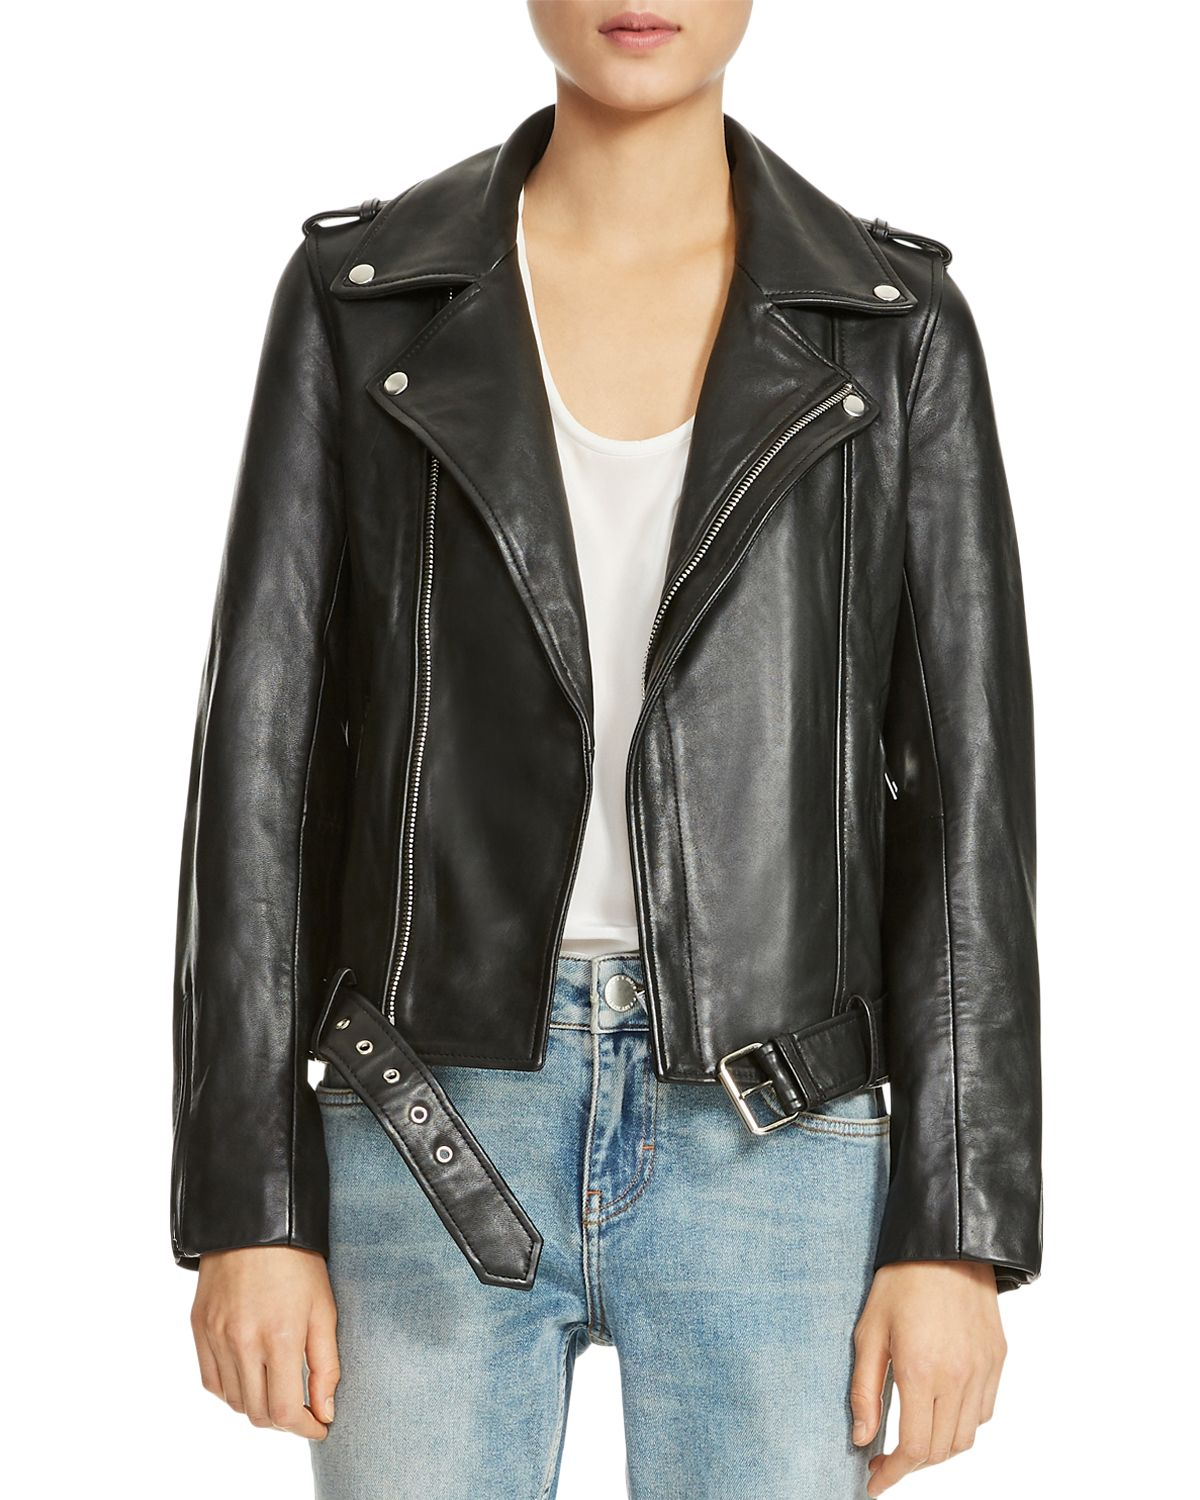 Bocelix Belted Leather Motorcycle Jacket by Maje